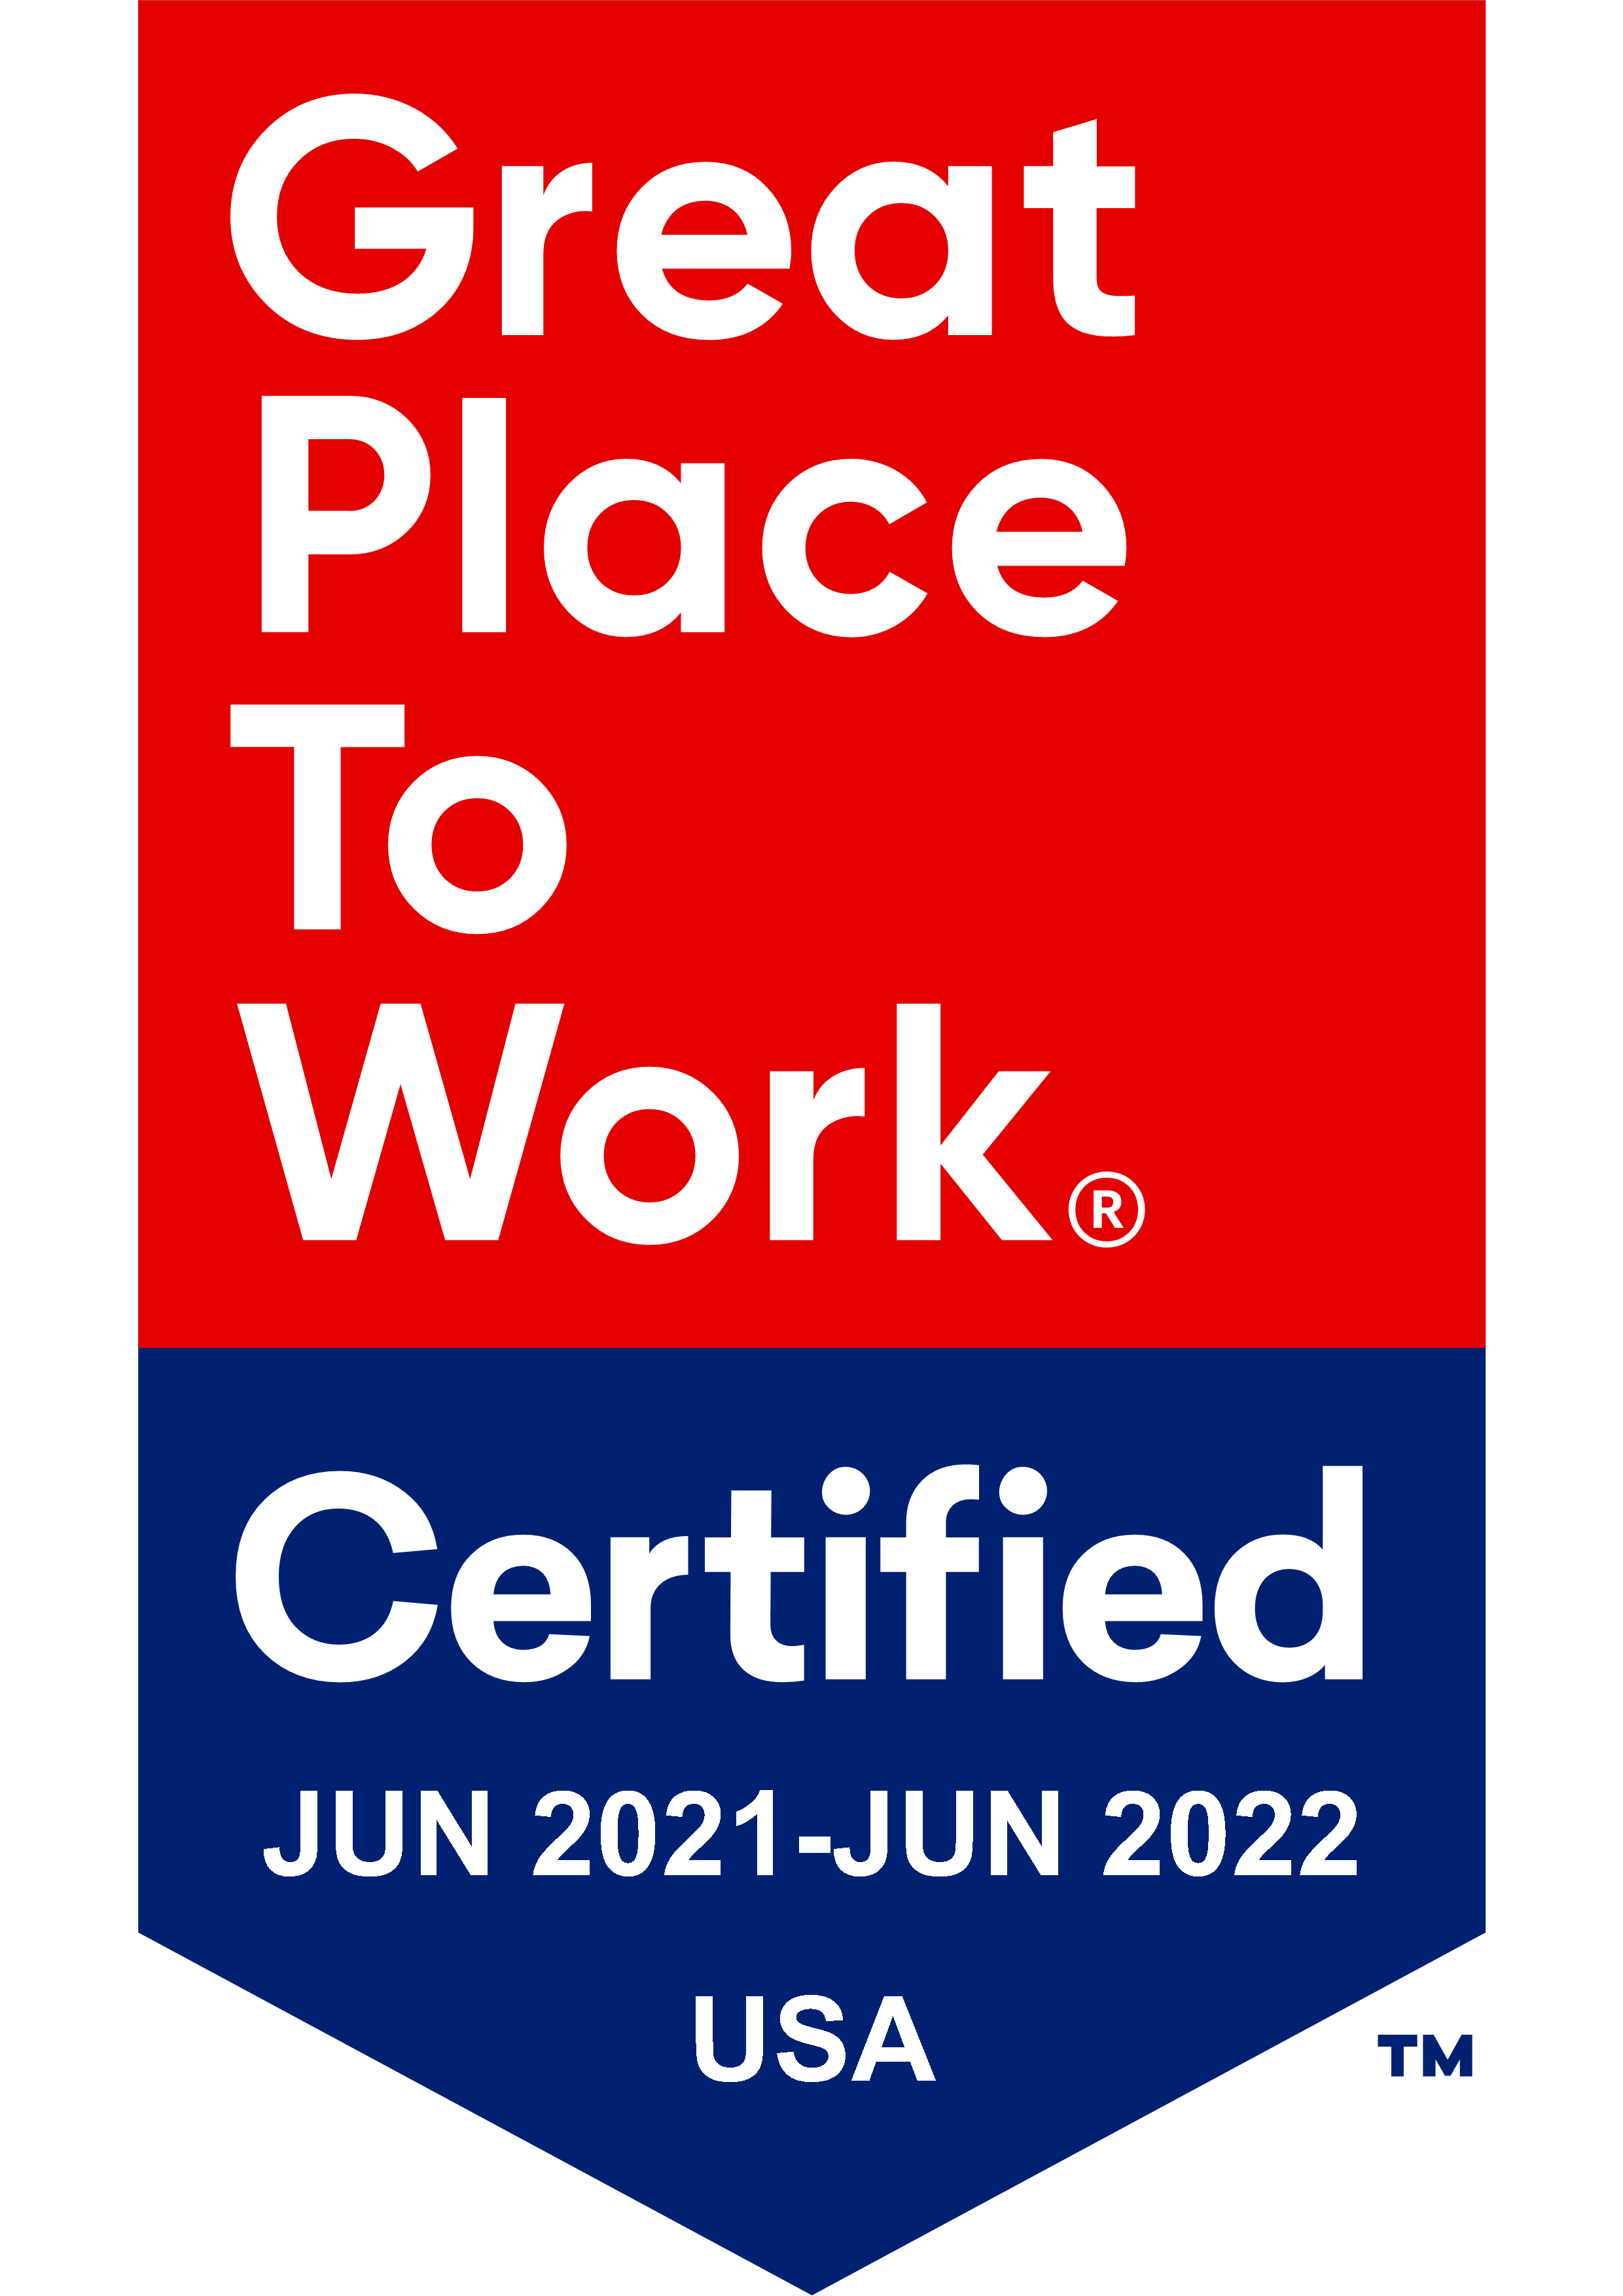 2021-2022 great place to work USA badge